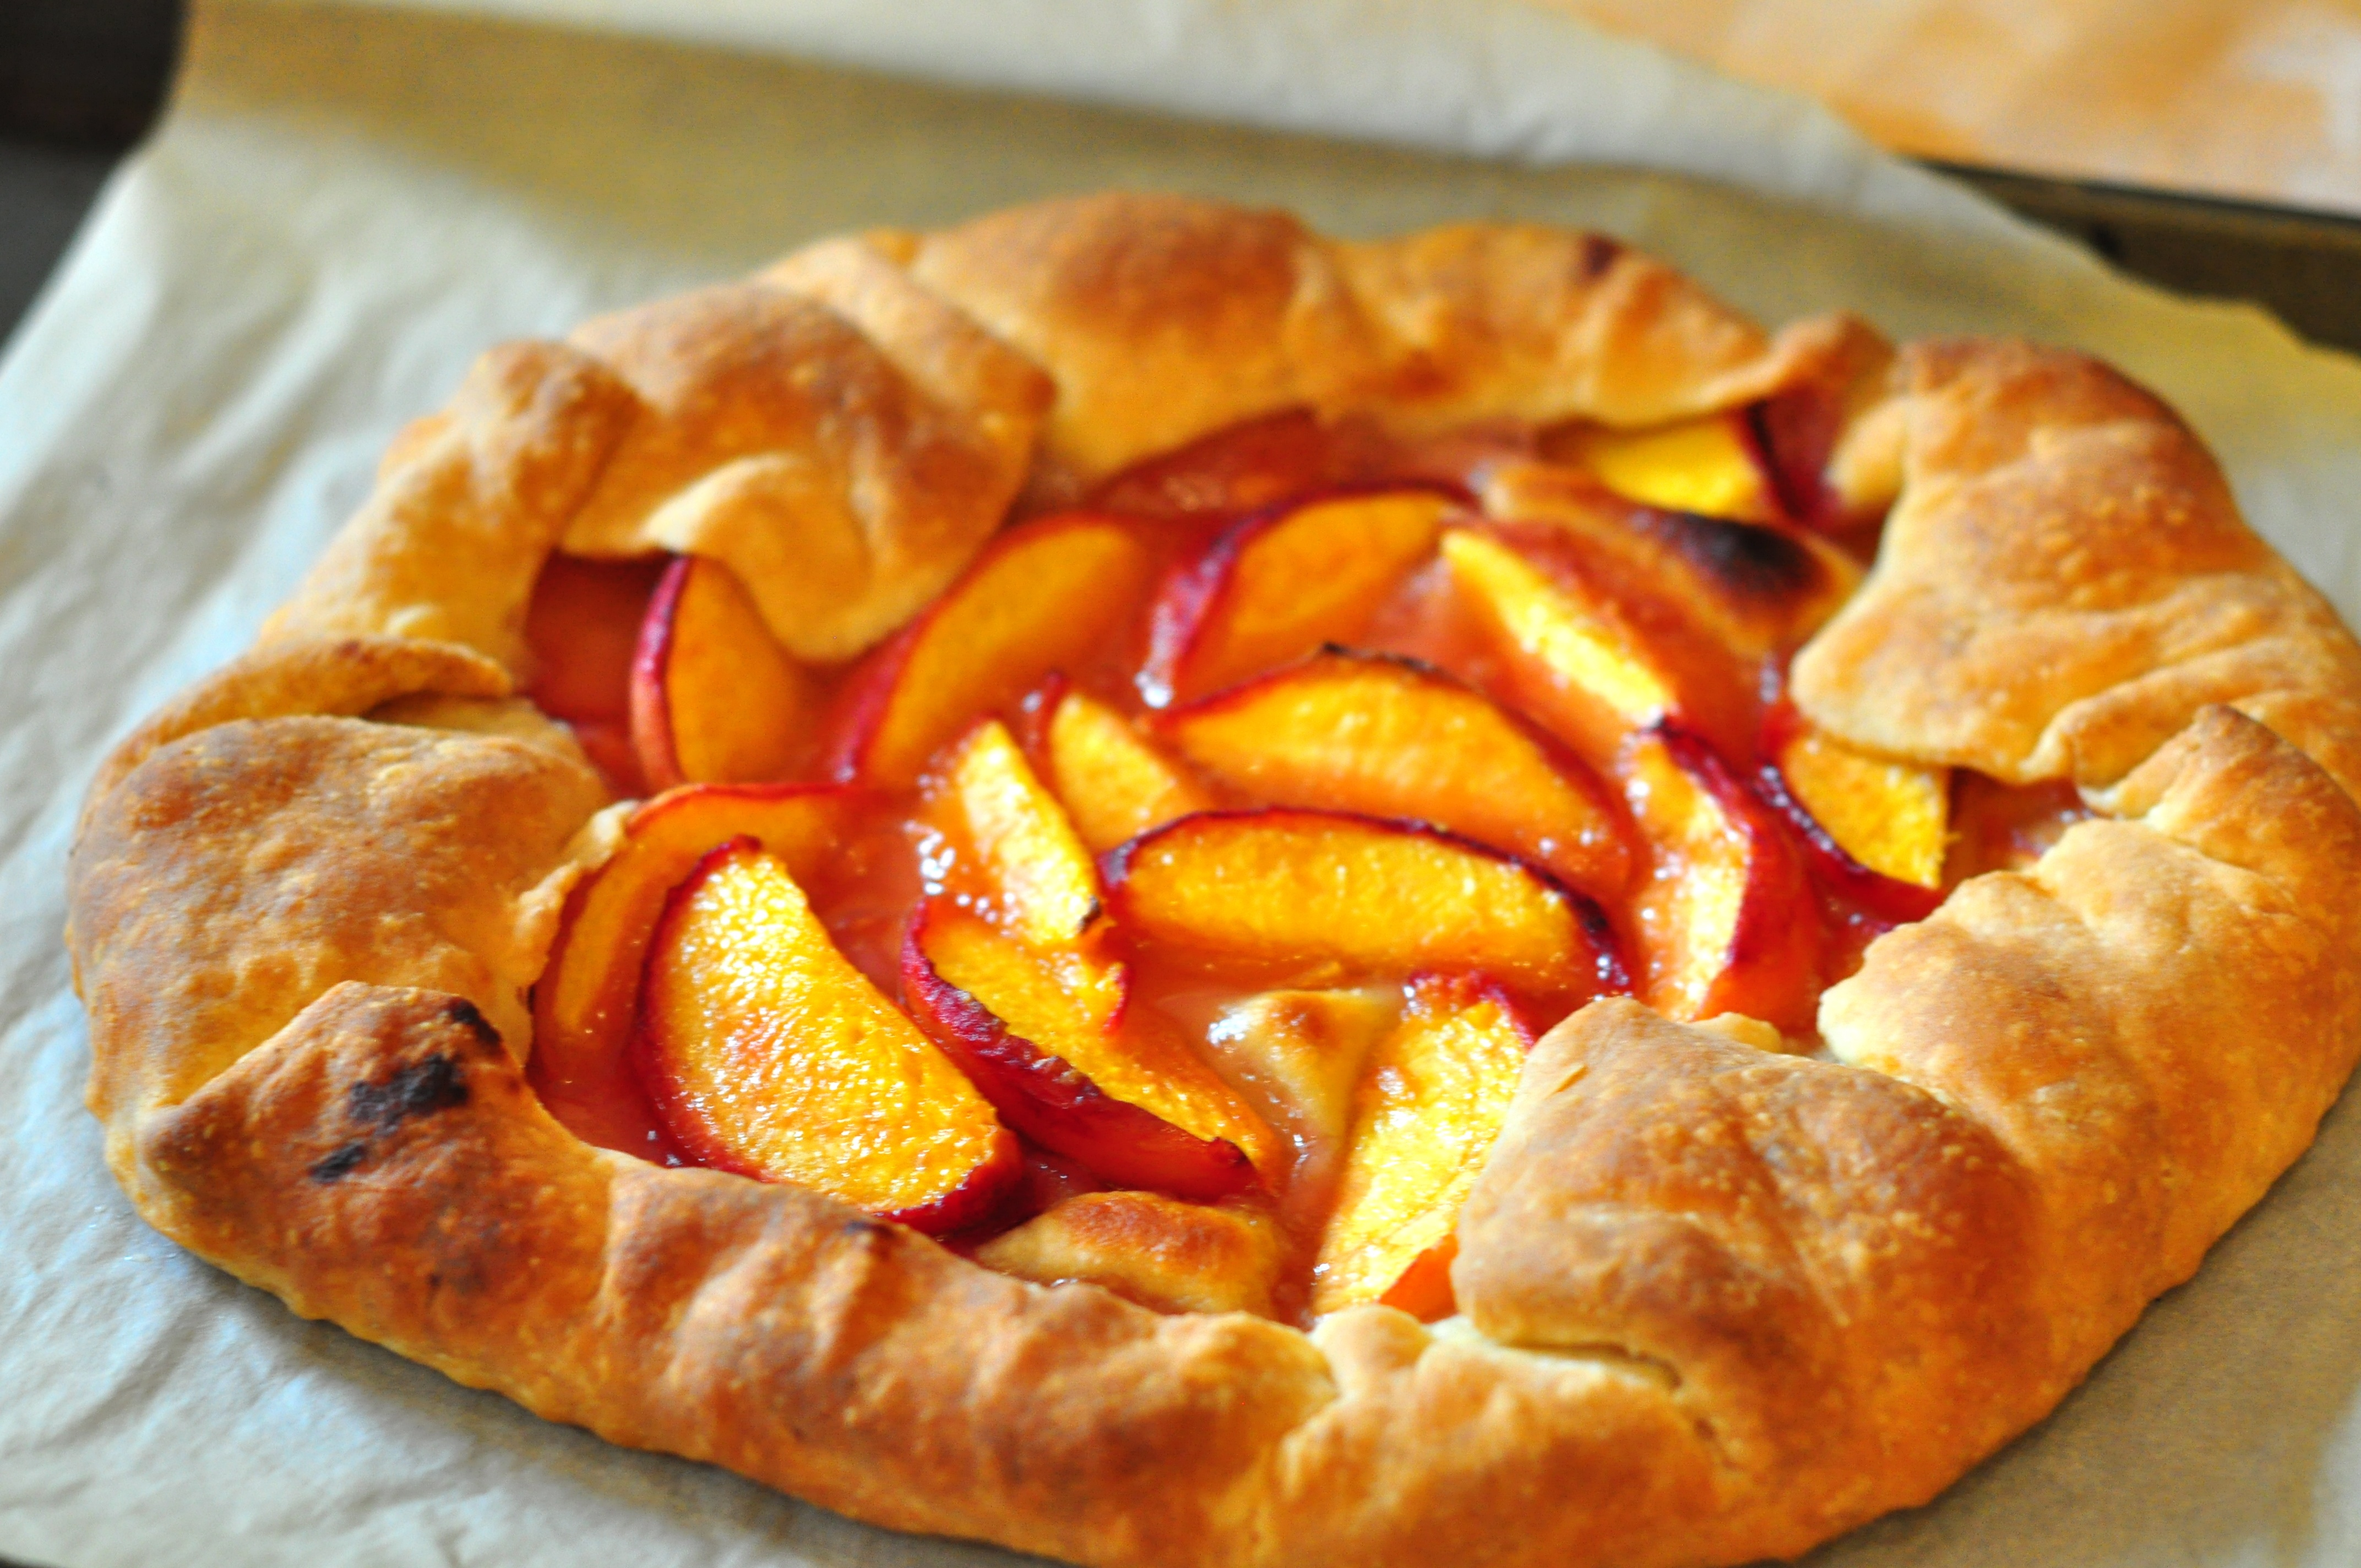 File:Peach crostata (4824835319).jpg - Wikimedia Commons